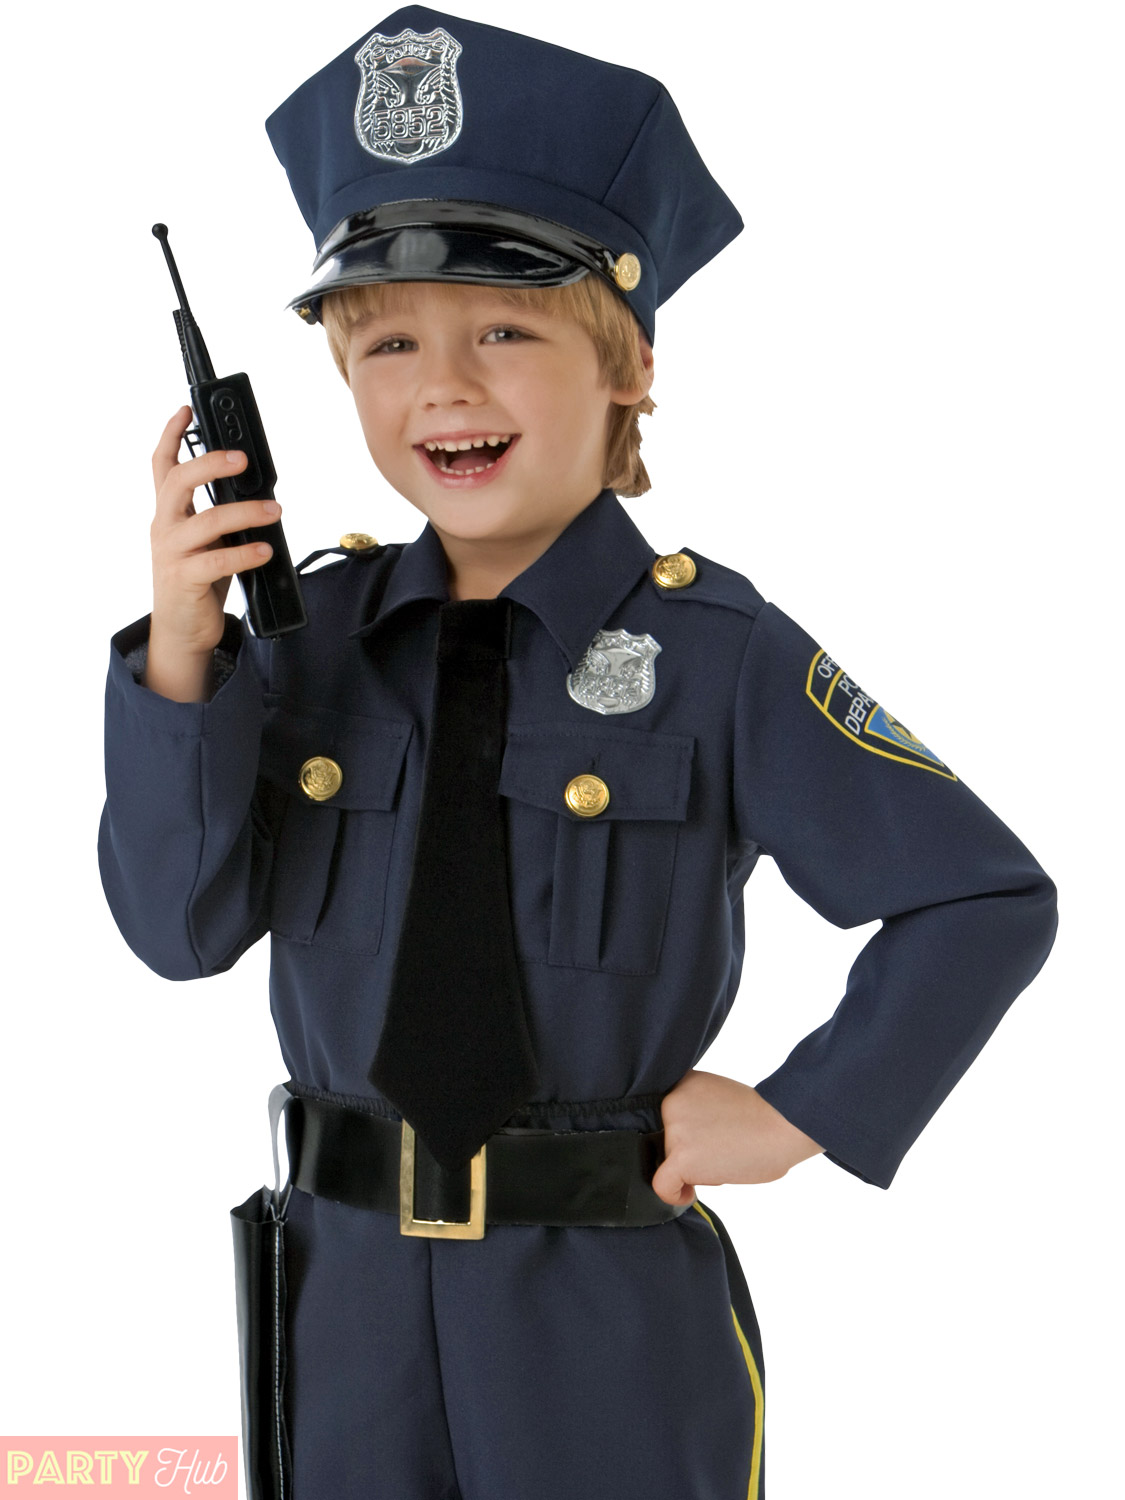 Boys police officer costume childrens cop fancy dress kids uniform book week day ebay - Police officer child costume ...